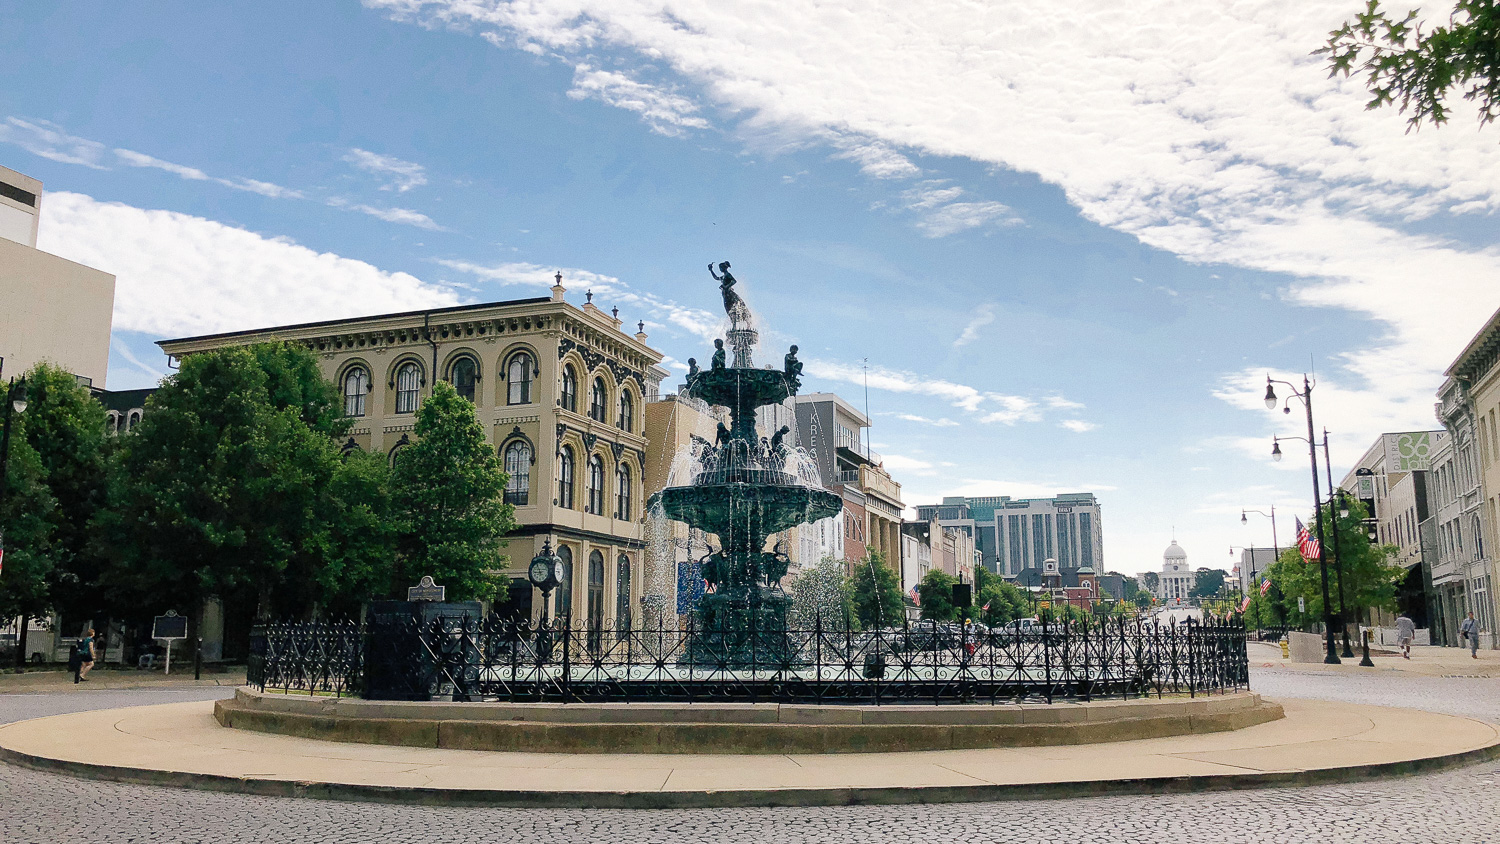 Court Square Fountain is a great civil rights site to visit with your family.